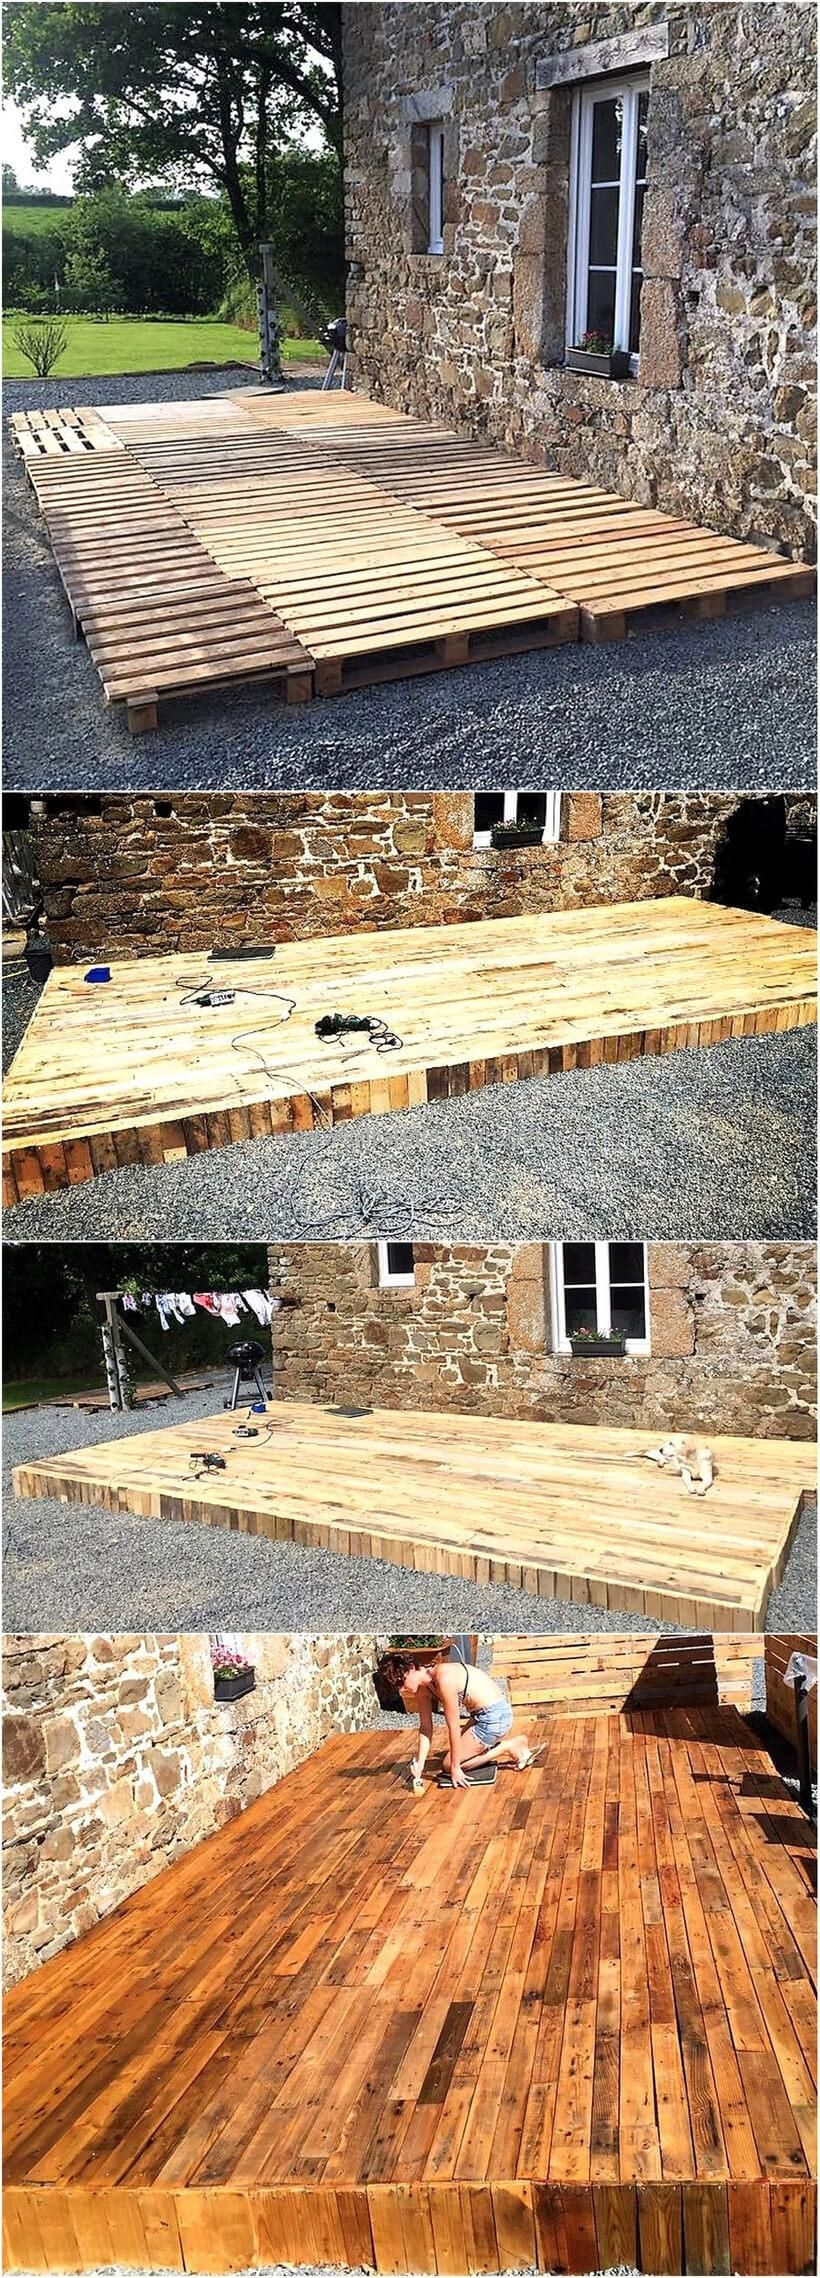 Woods · Need An Idea To Arrange Seating On The Patio? Have A Look At The  Patio